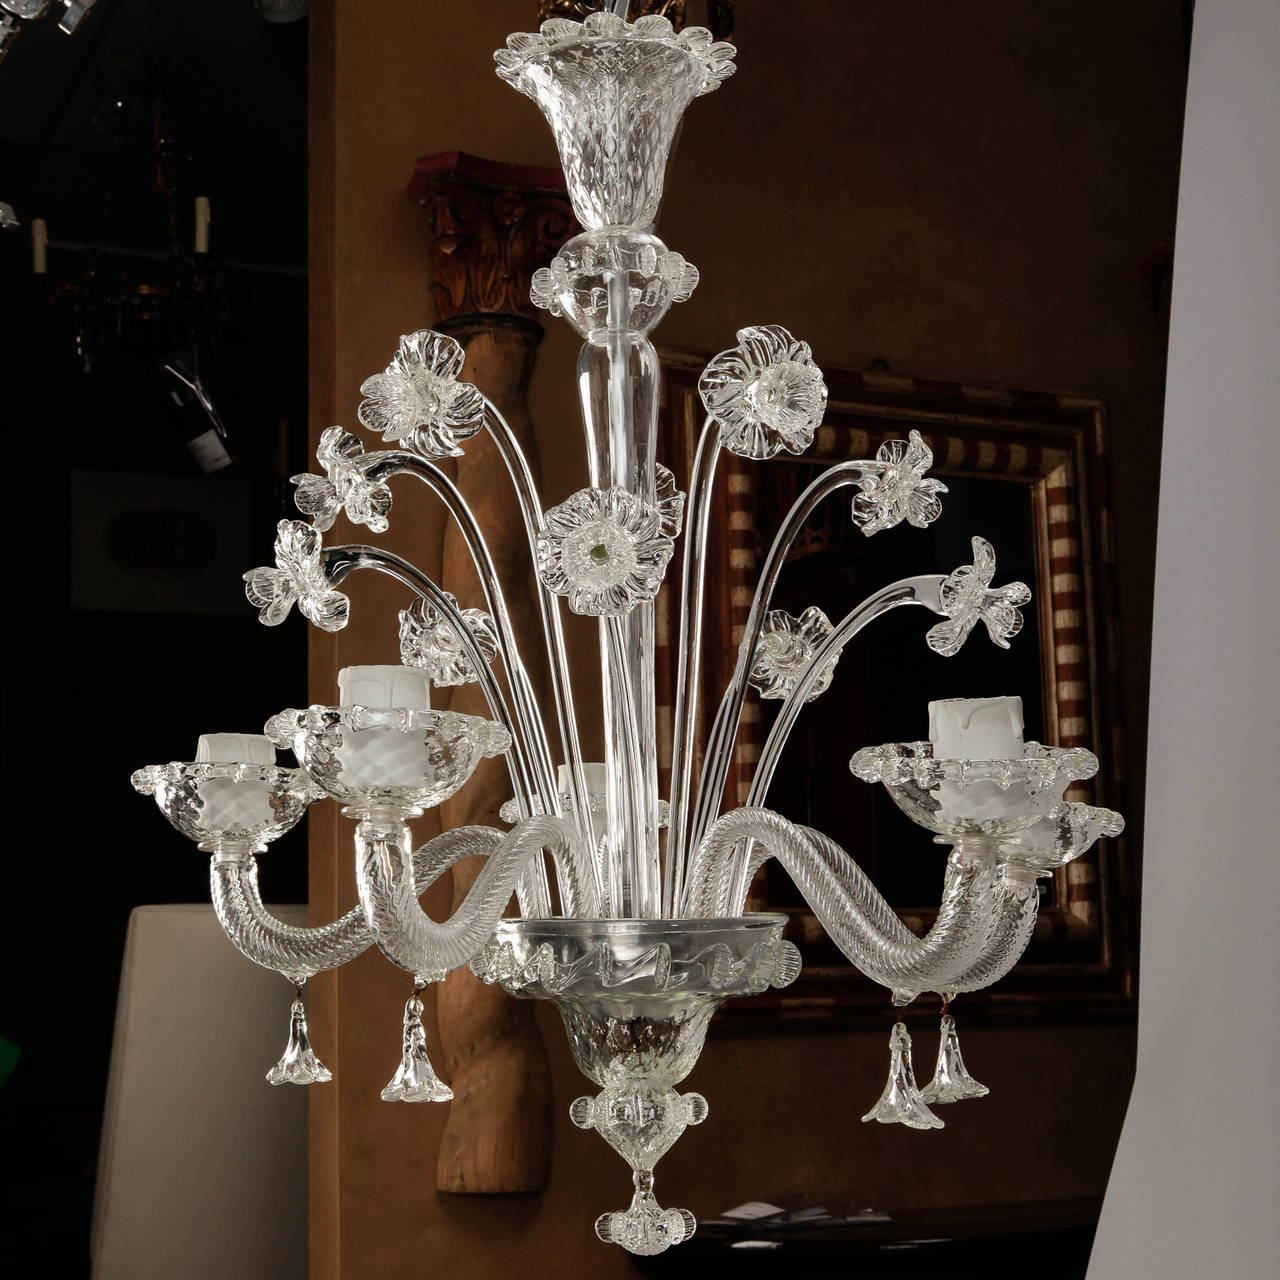 Venetian Five-Light Clear Glass Daffodil Chandelier For Sale 1